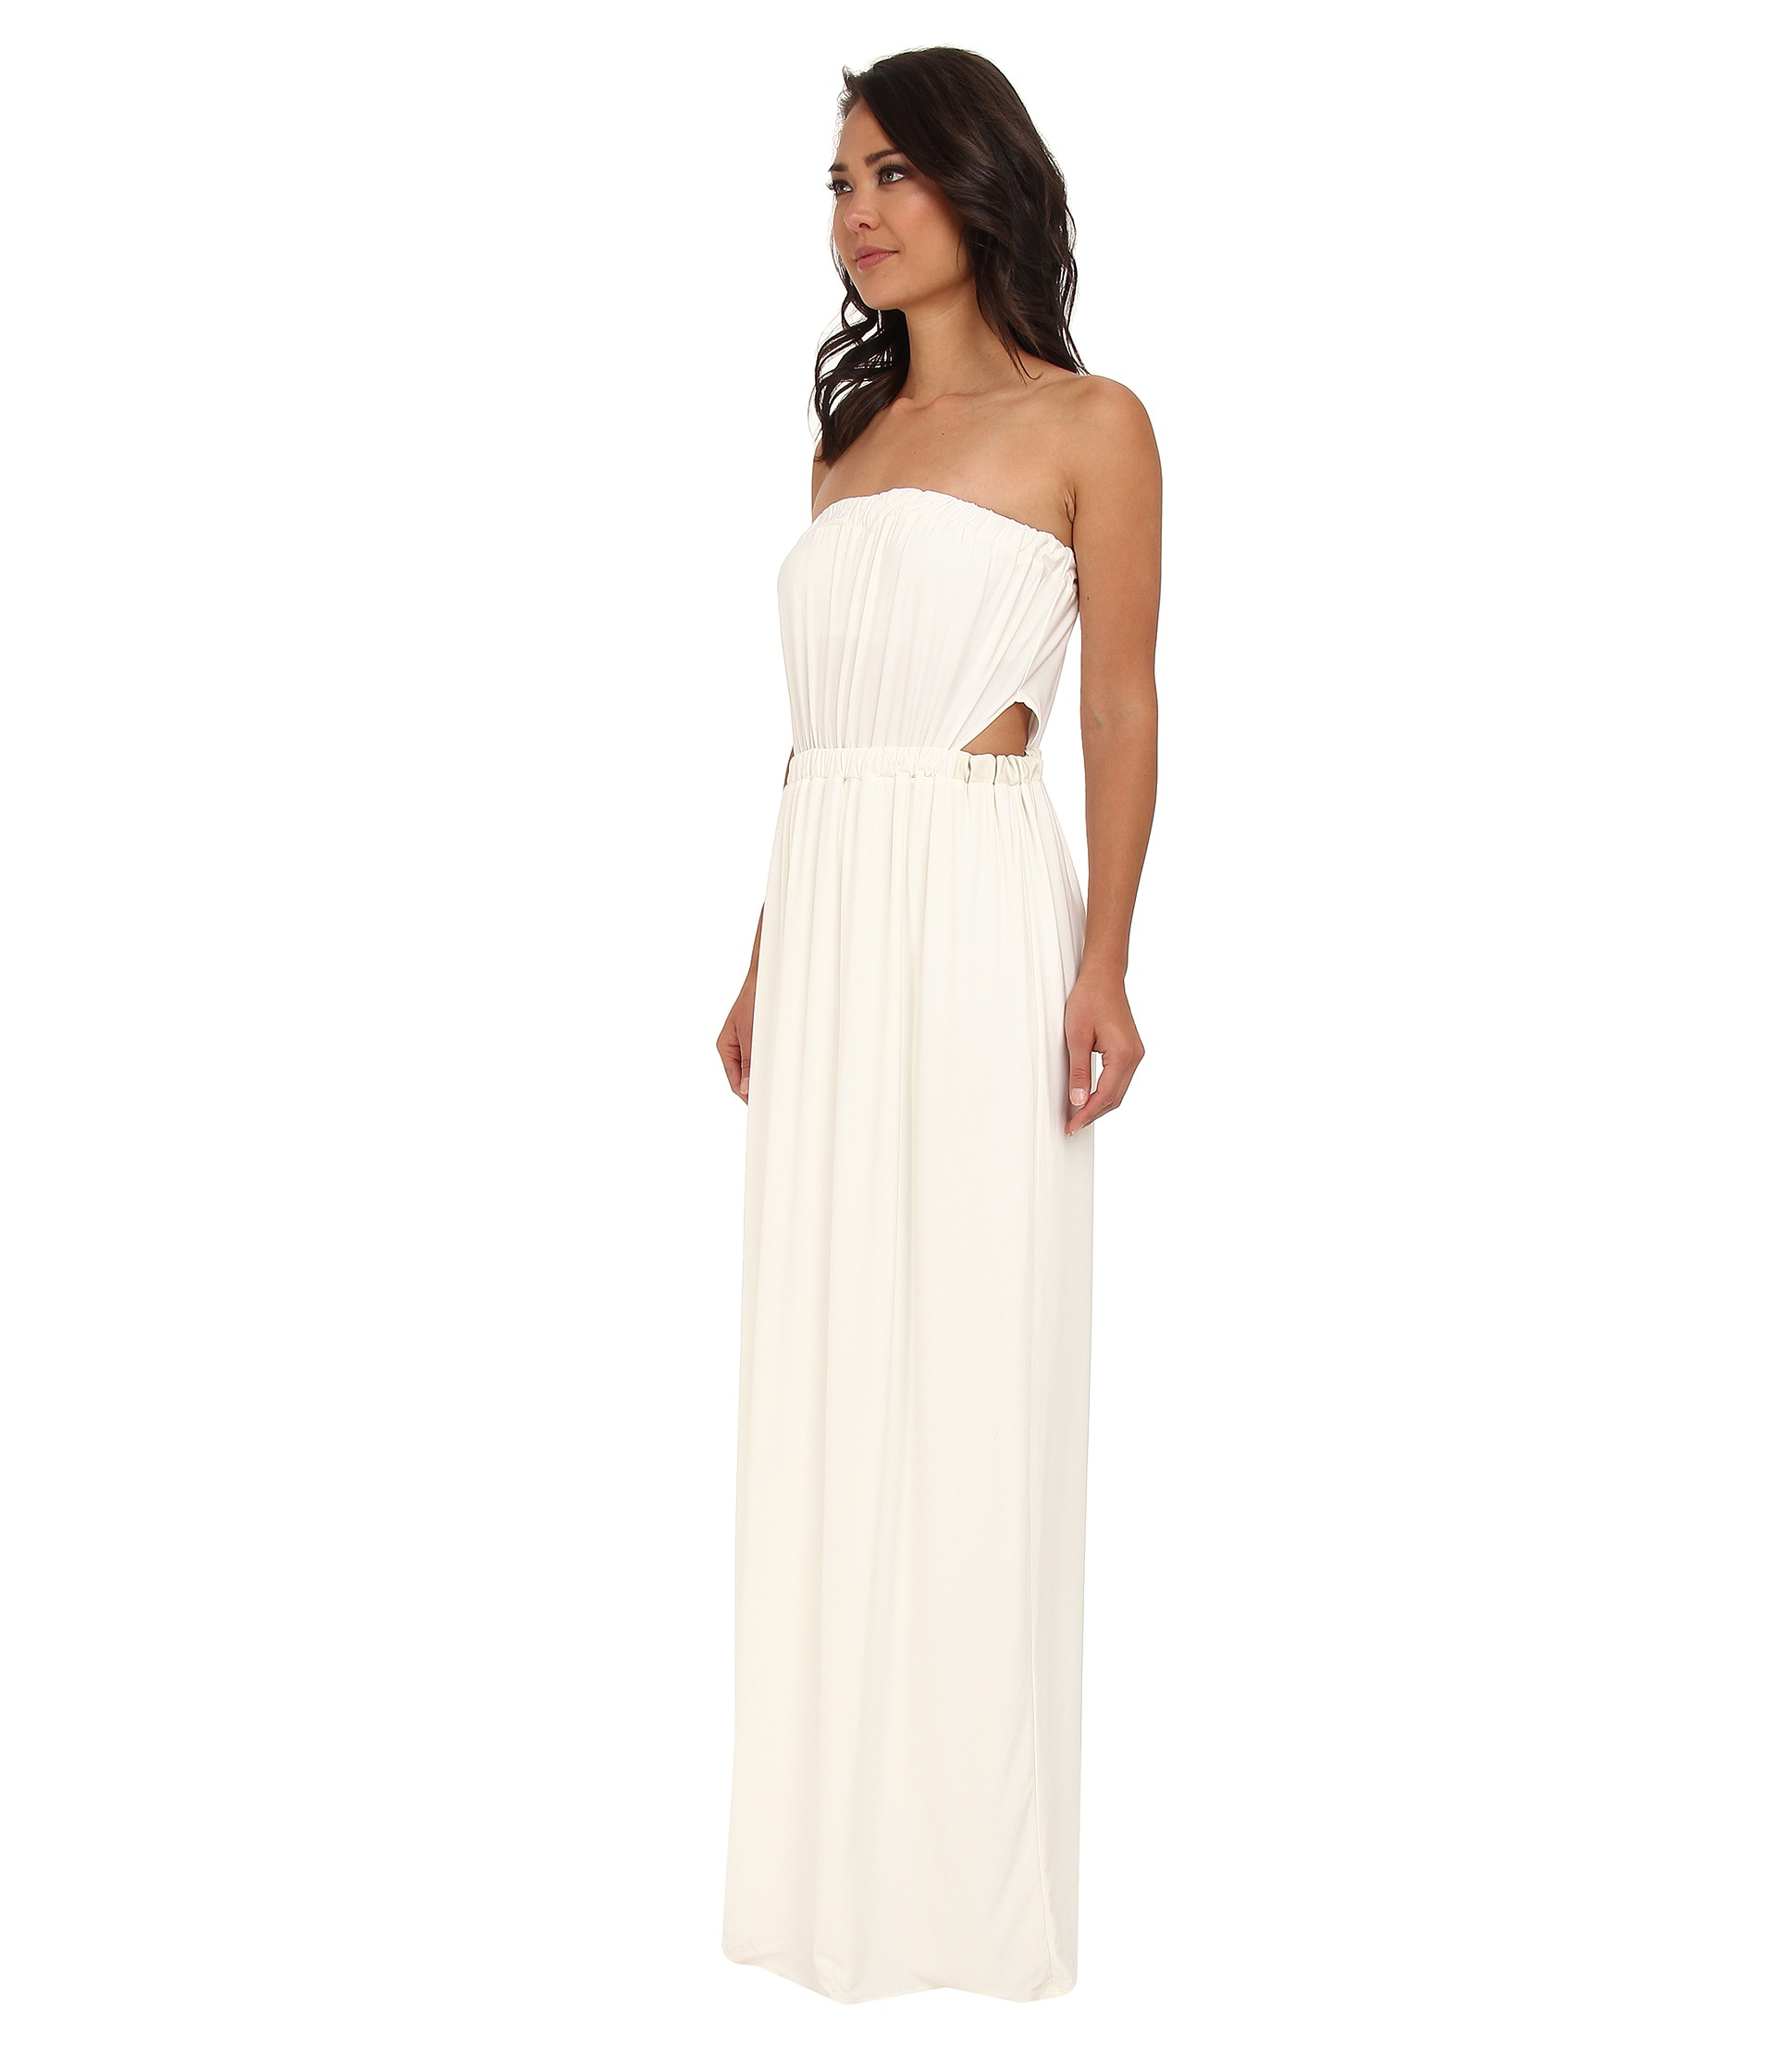 T-bags Tube Maxi Dress W Side Cutouts in White | Lyst